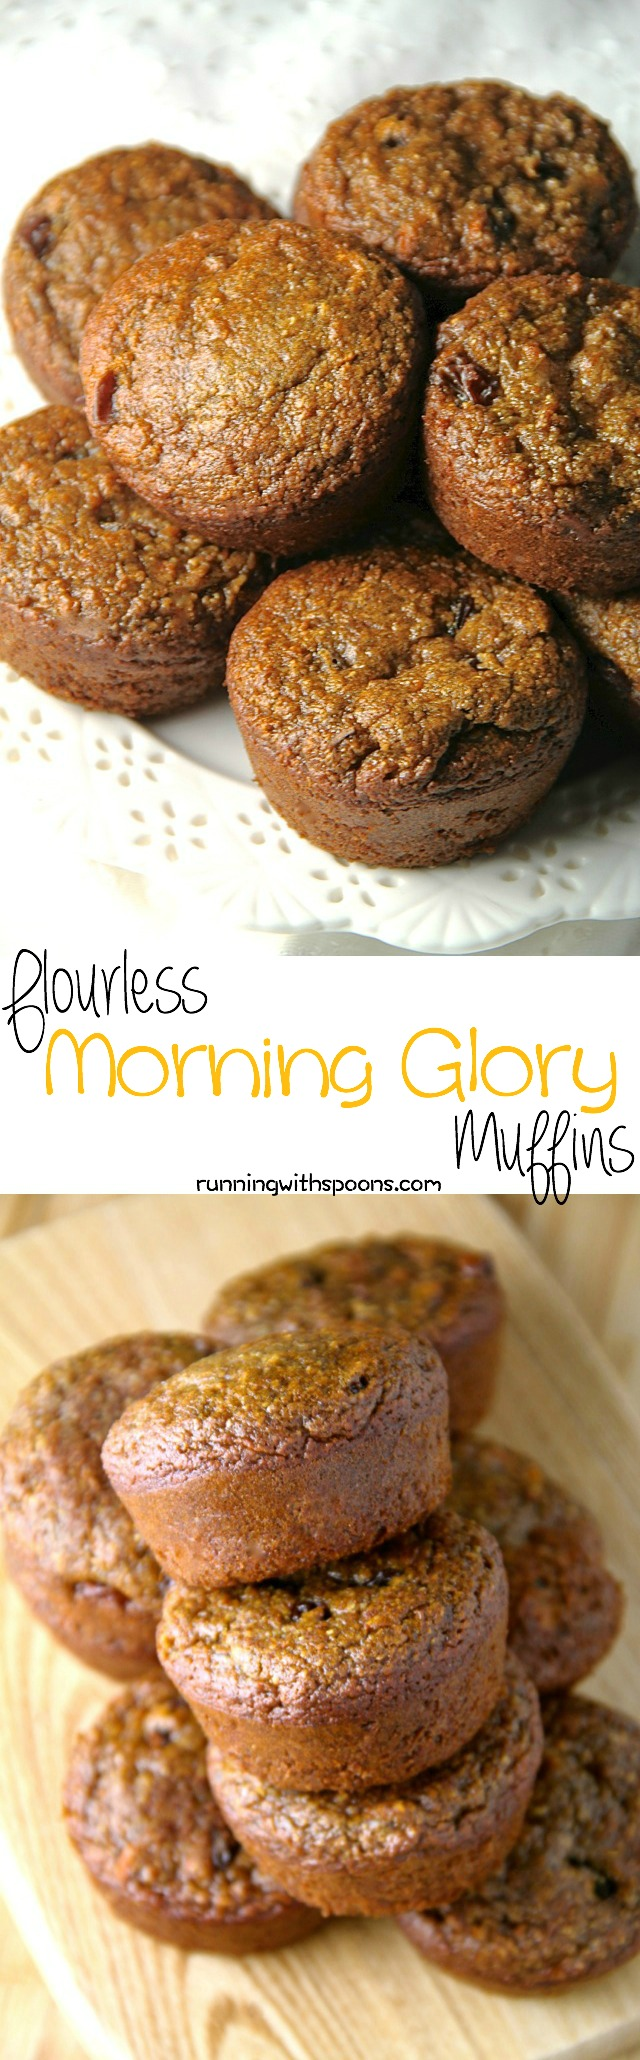 These delicious Flourless Morning Glory Muffins are gluten-free, refined sugar-free, dairy-free, oil-free and whipped up in the blender in under 5 minutes flat!    runningwithspoons.com #glutenfree #muffins